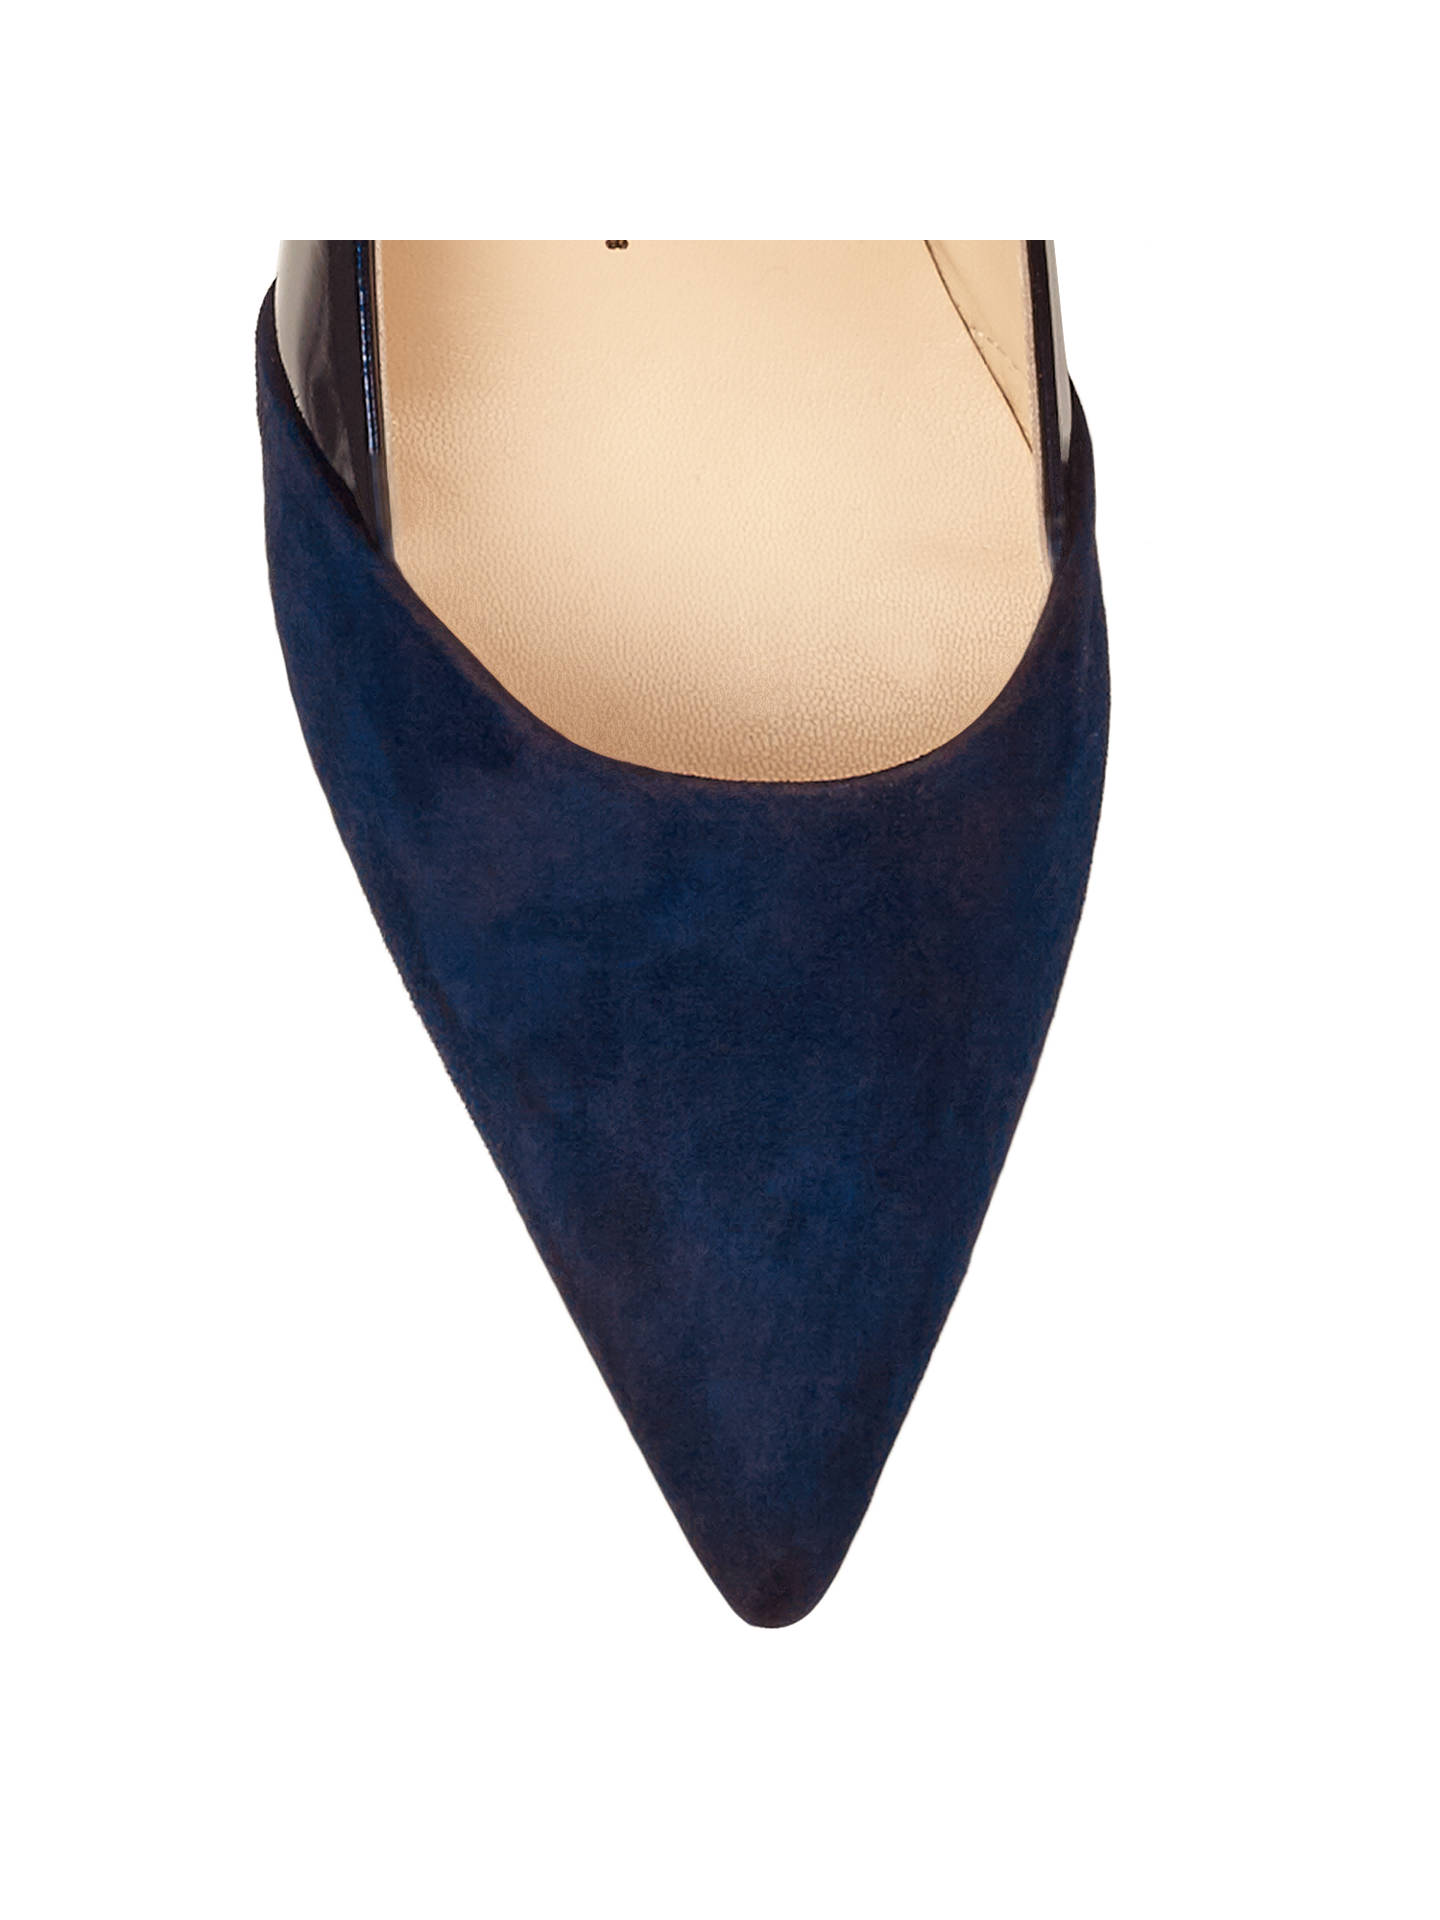 19a34a65b6bfb ... Buy Peter Kaiser Semitara Mid Heeled Stiletto Court Shoes, Navy Suede,  4 Online at